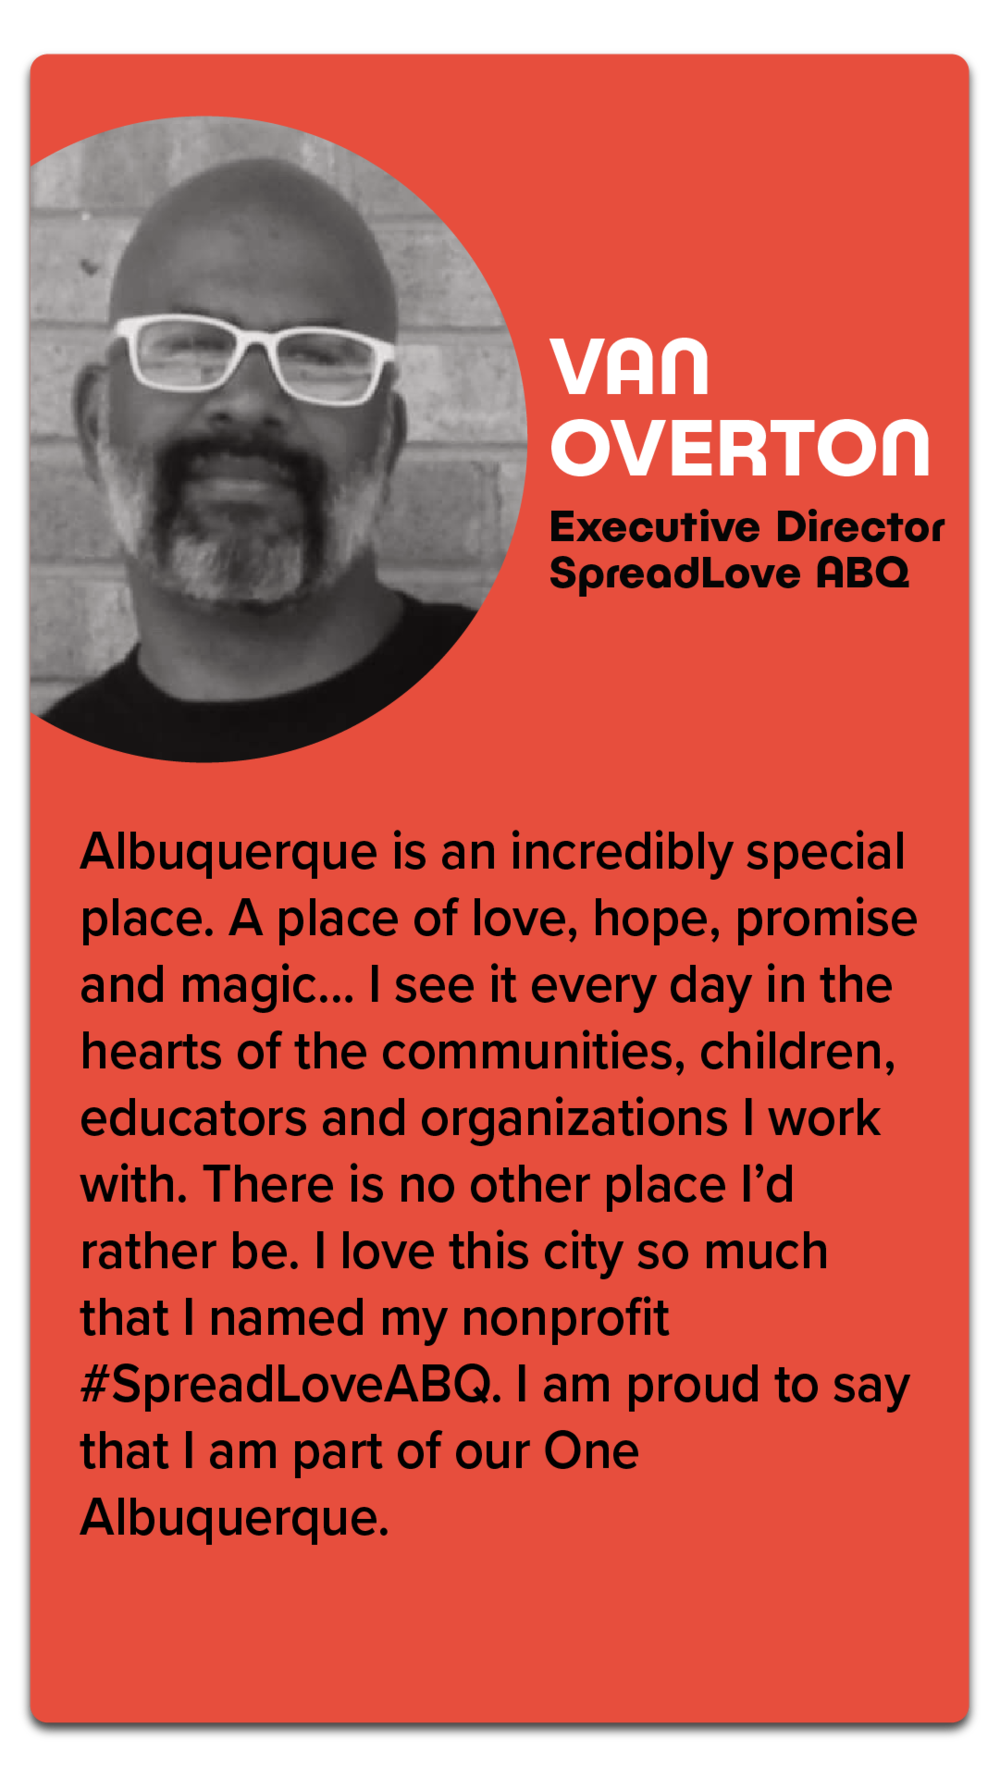 """Van Overton, Executive Director, SpreadLove ABQ  """"Albuquerque is an incredibly special place. A place of love, hope, promise and magic...I see it every day in the hearts of the communities, children, educators and organizations I work with. There is no other place I'd rather be. I love this city so much that I named my nonprofit #SpreadLoveABQ. I am proud to say that I am part of our One Albuquerque."""""""